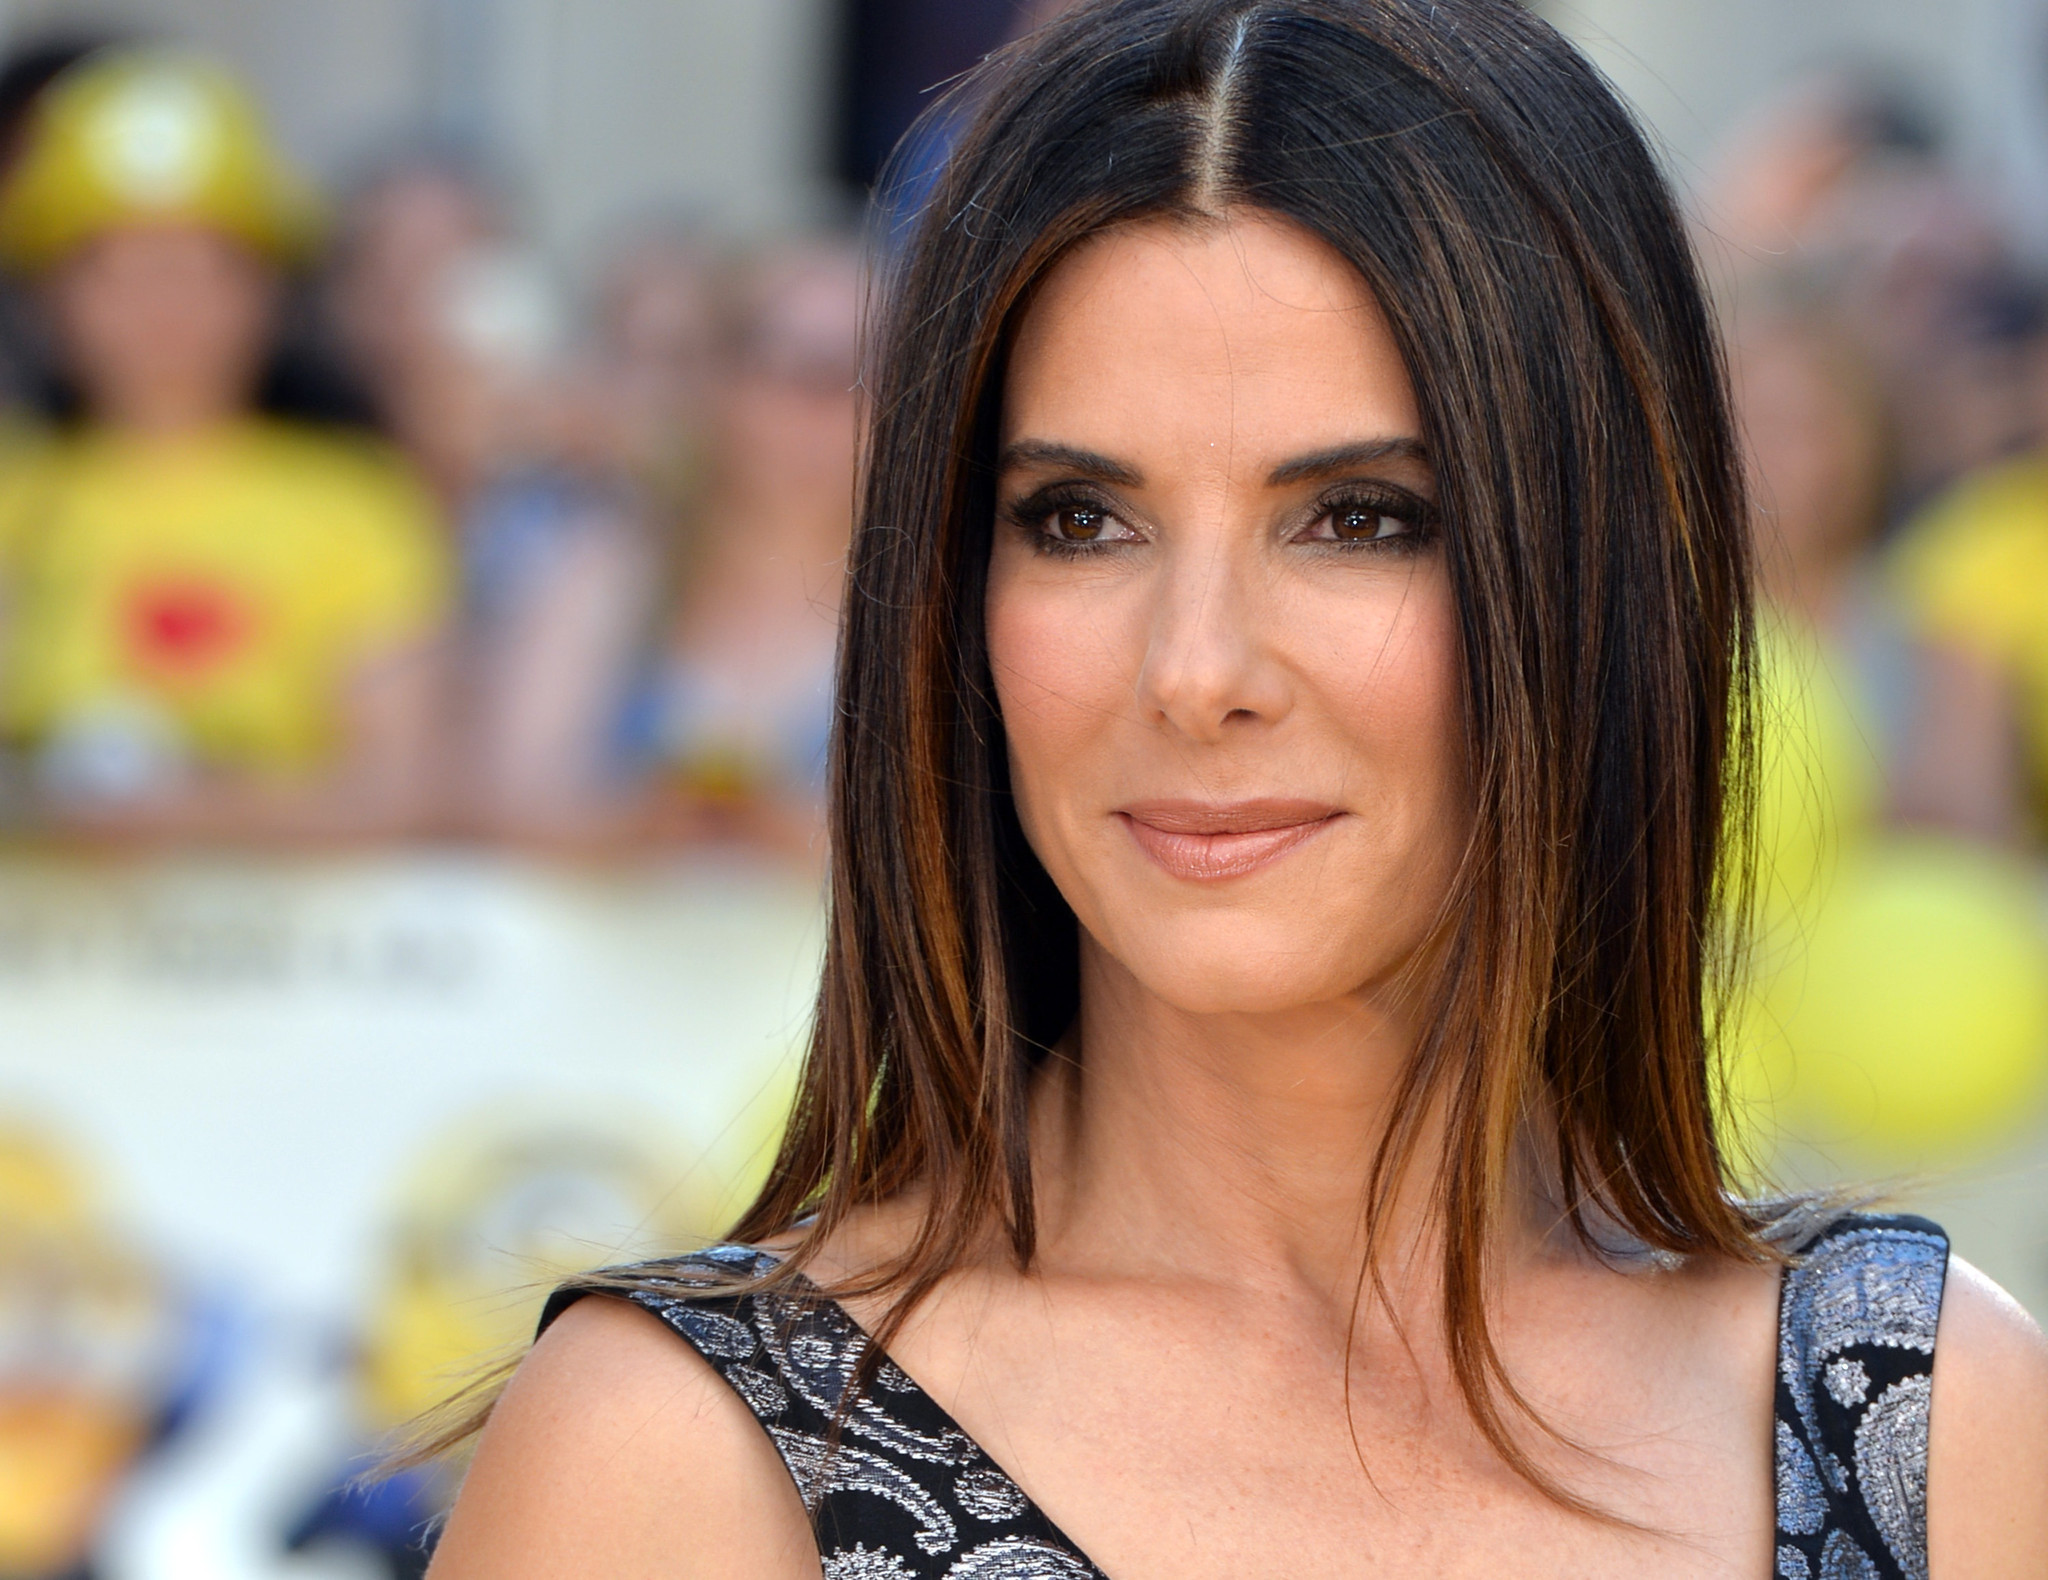 <b>Sandra Bullock</b> returns to the limelight at 'Minions' world premiere - LA ... - la-et-mg-sandra-bullock-minions-premiere-red-carpet-20150612